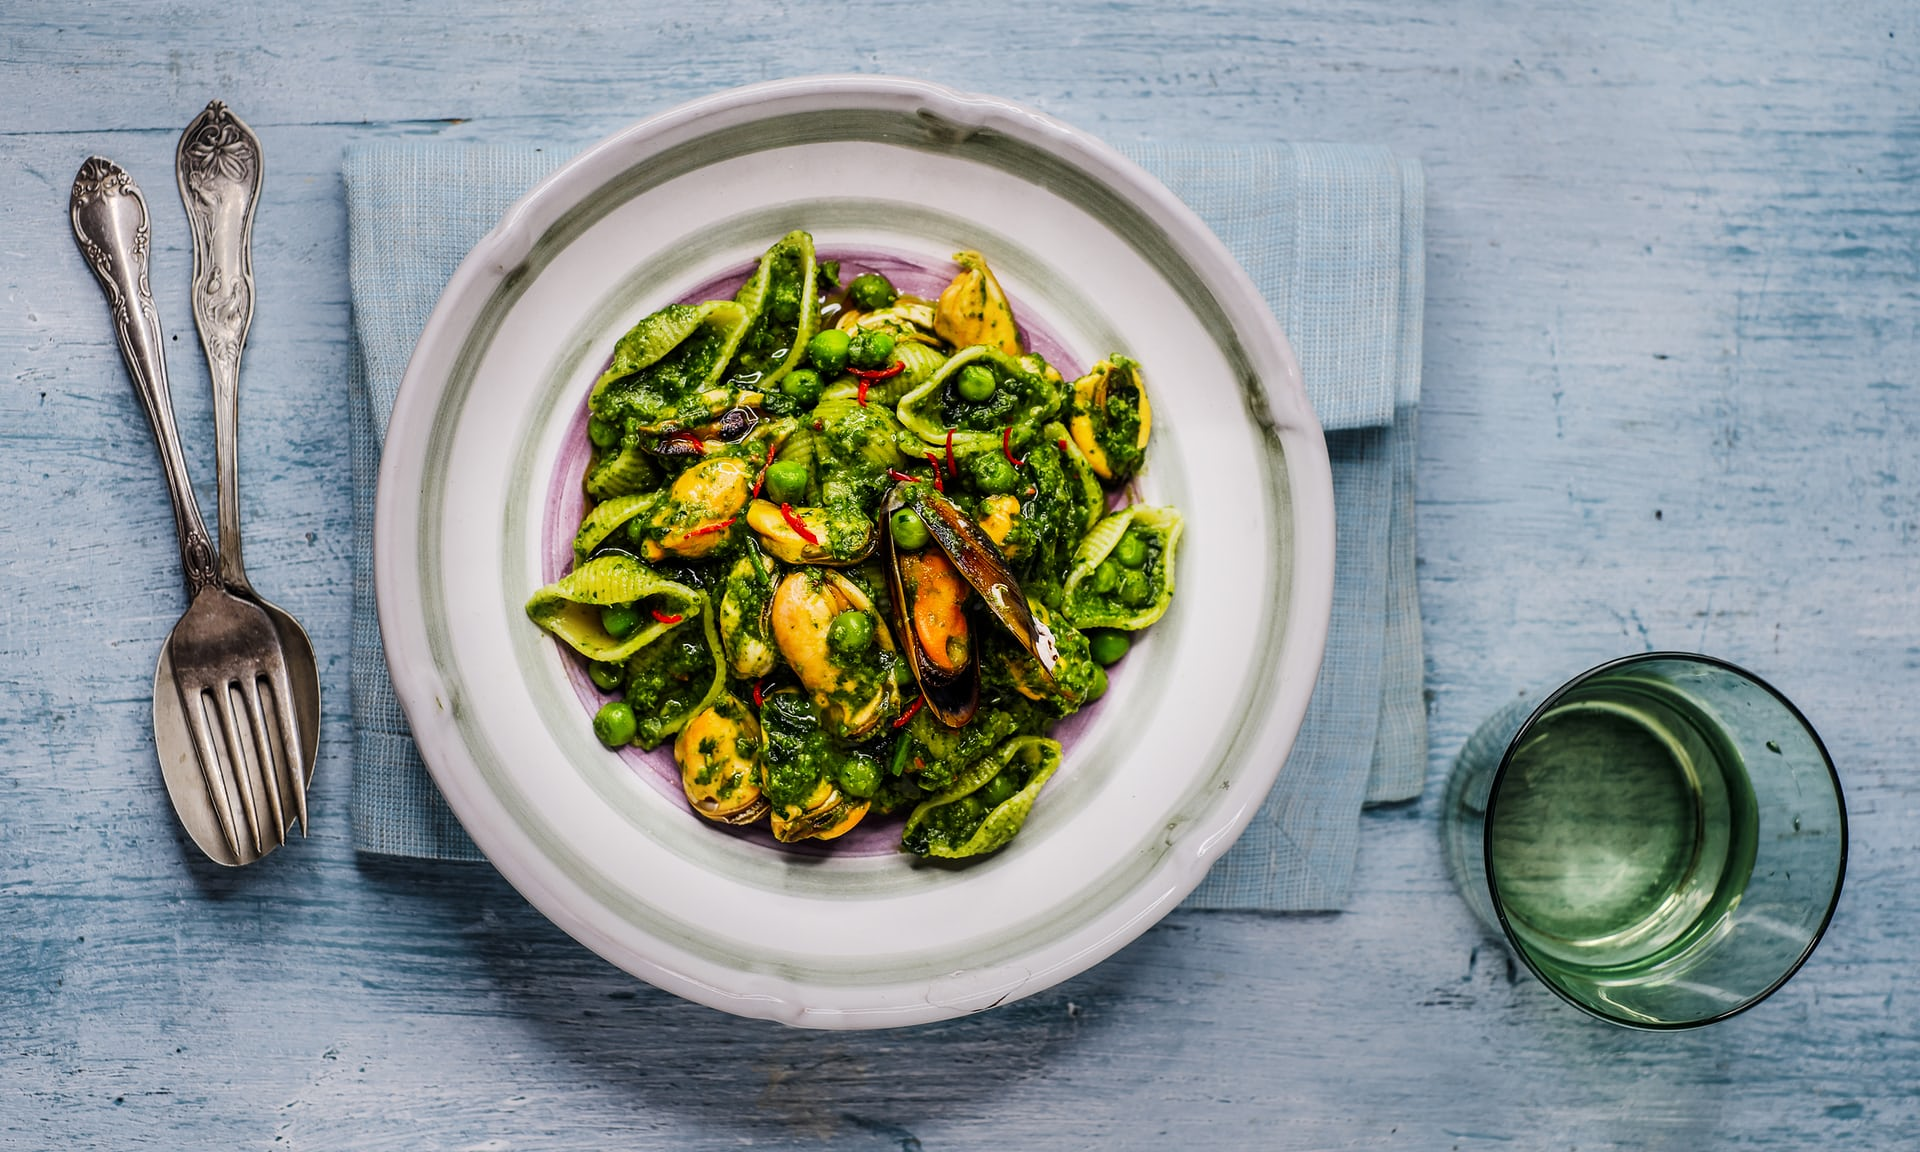 CHECK OUT THE OTHER 19 BEST RECIPES FOR UNDER A TENNER